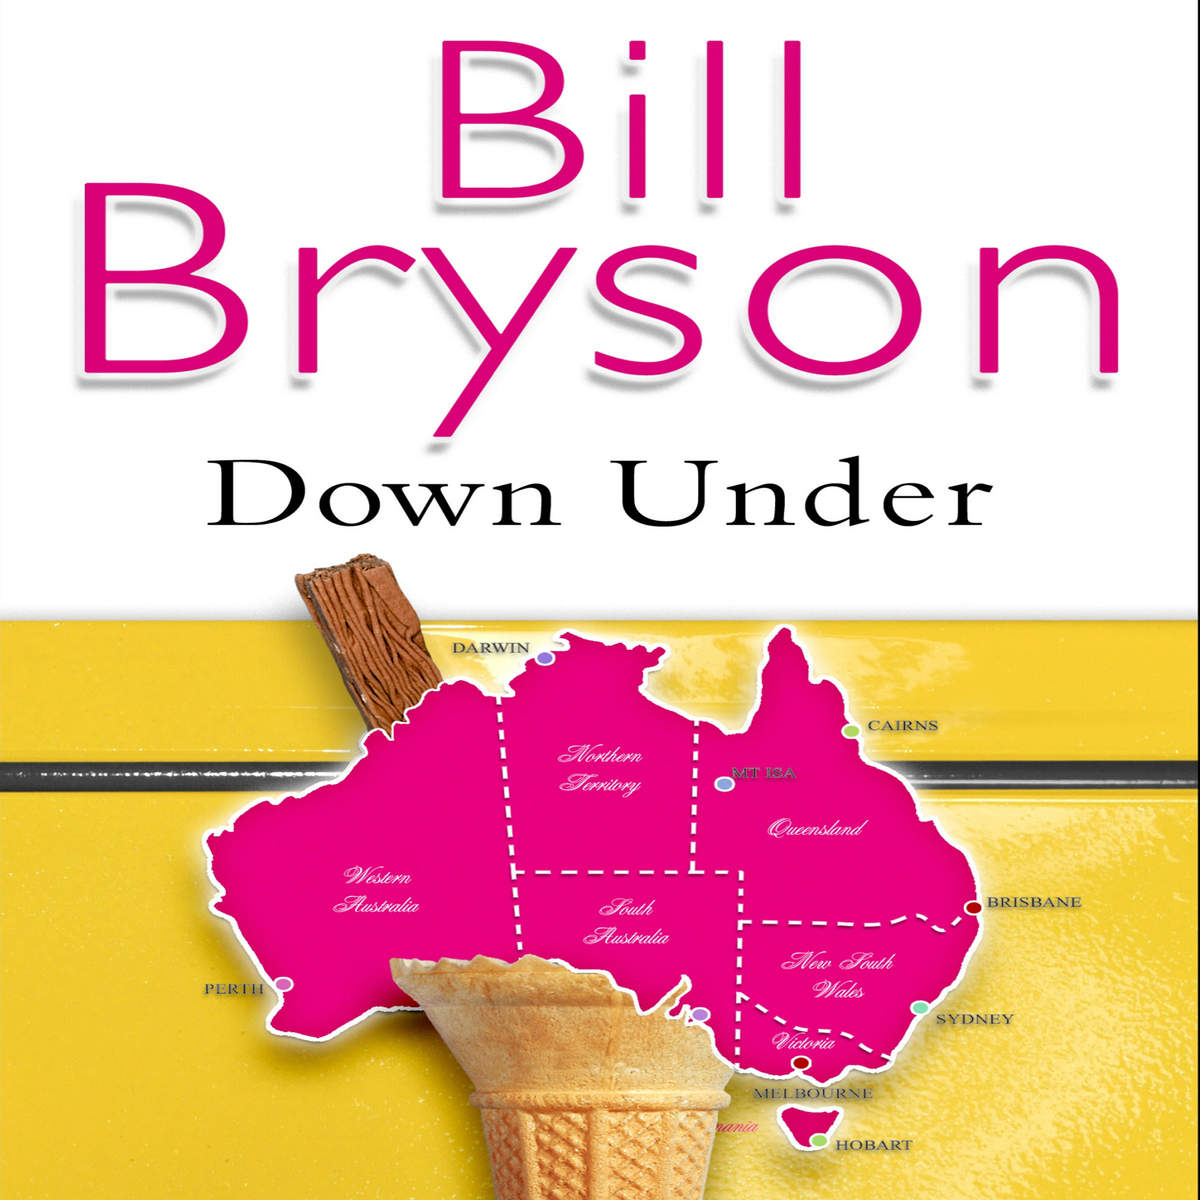 bill bryson down under Buy down under by bill bryson (9781784161835) from boomerang books, australia's online independent bookstore.